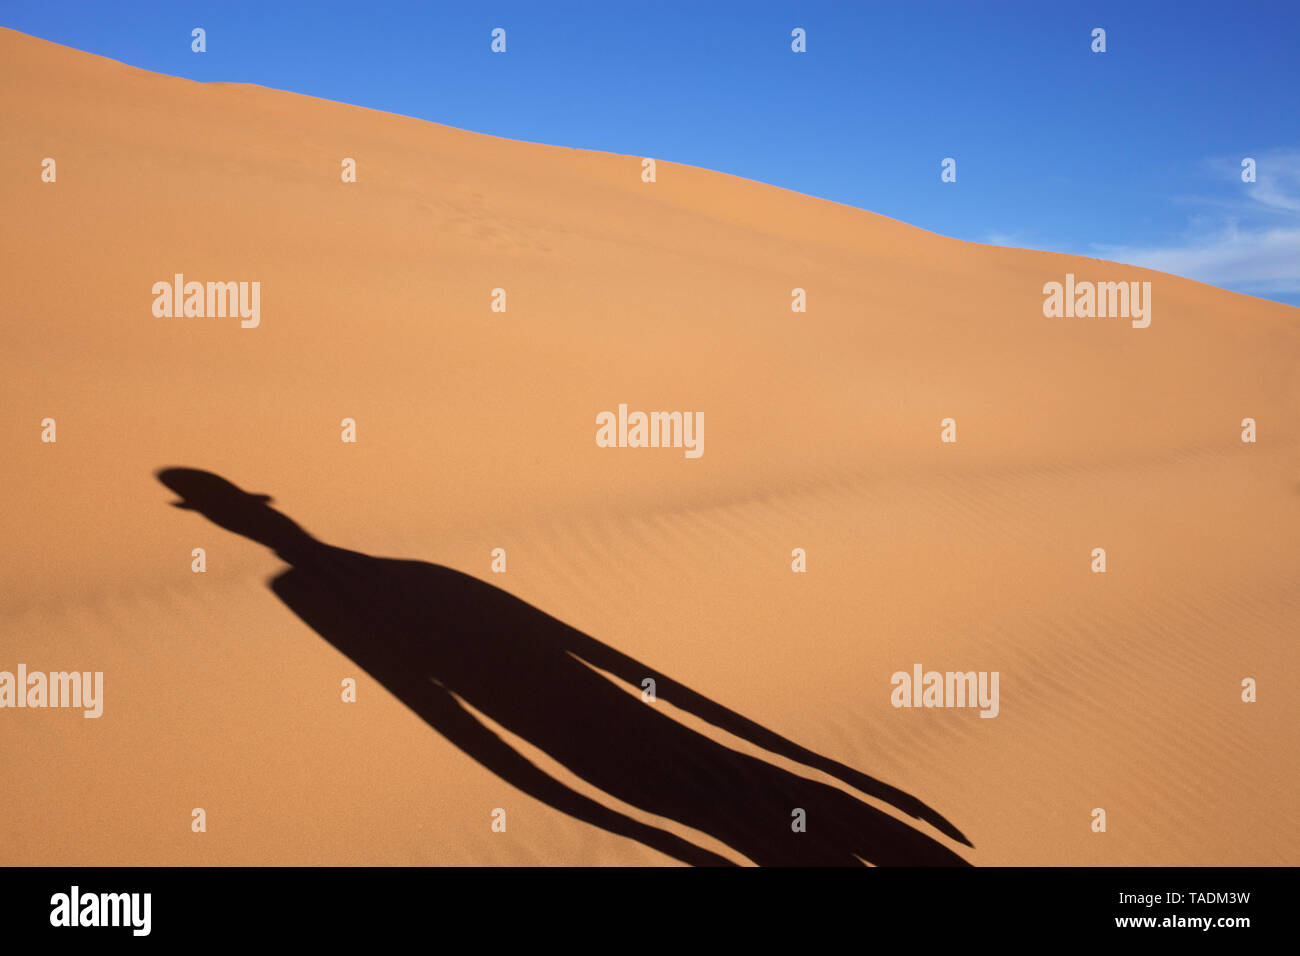 Morocco, Merzouga, Erg Chebbi, shadow of man wearing a bowler hat in desert dune - Stock Image